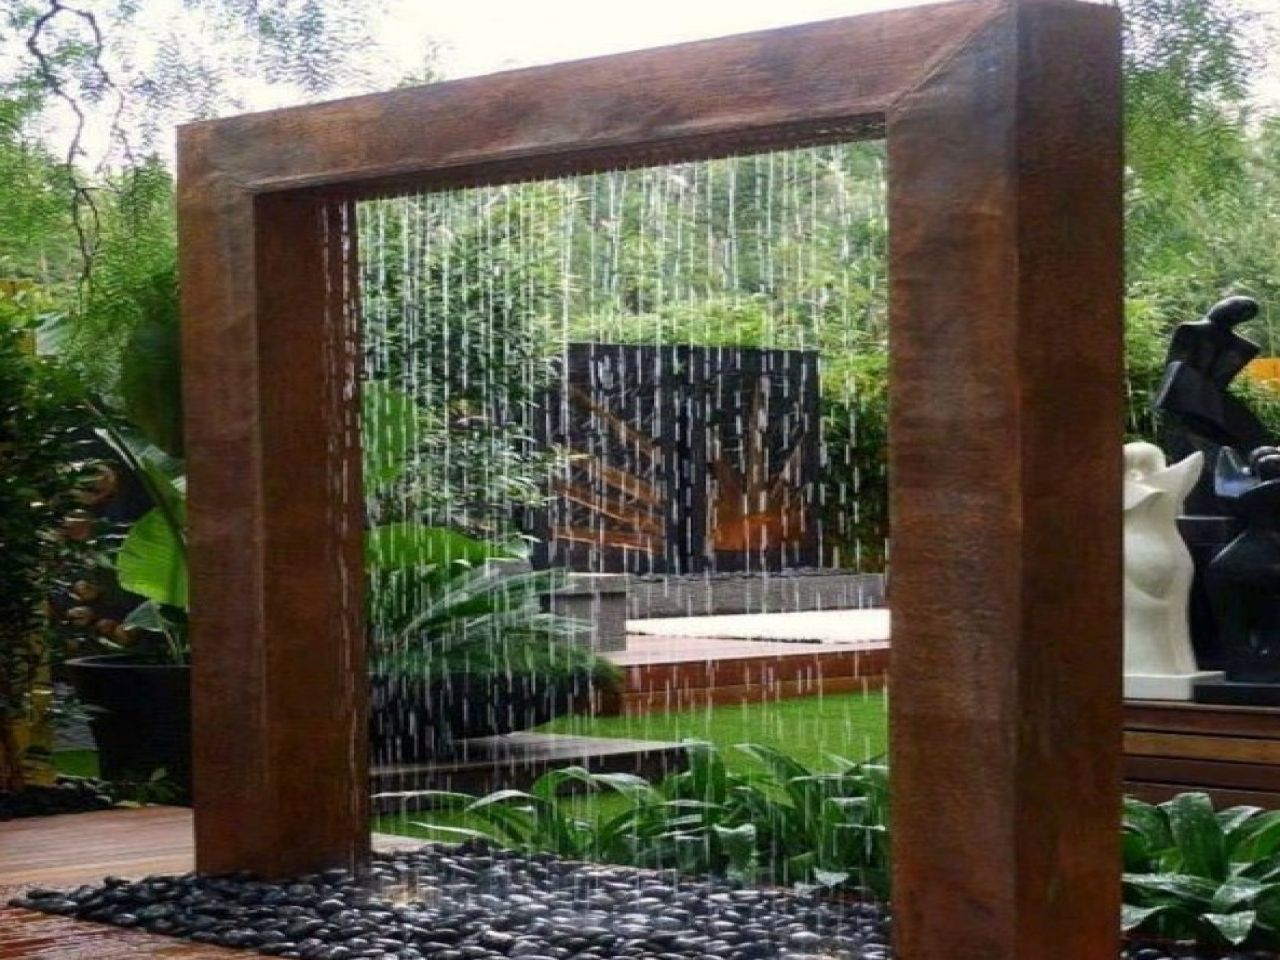 Architecture outside water fountains garden outdoor wall